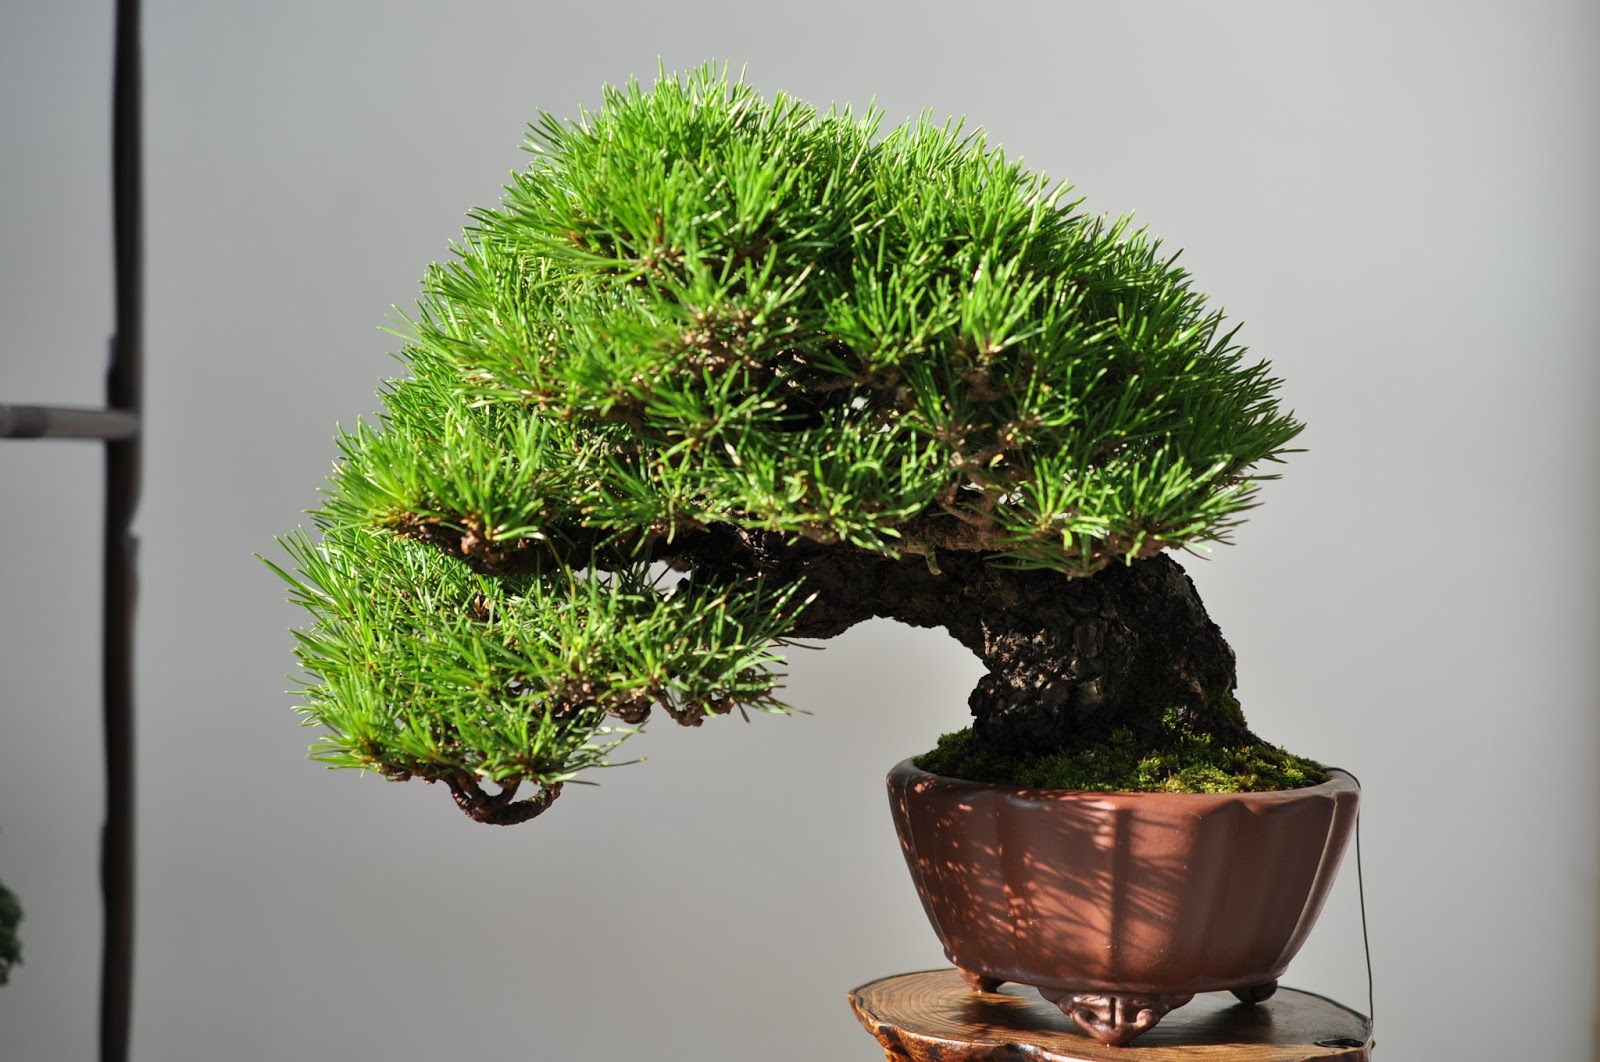 All In One Bonsai And Ceramics TienMu Bonsai Exhibition